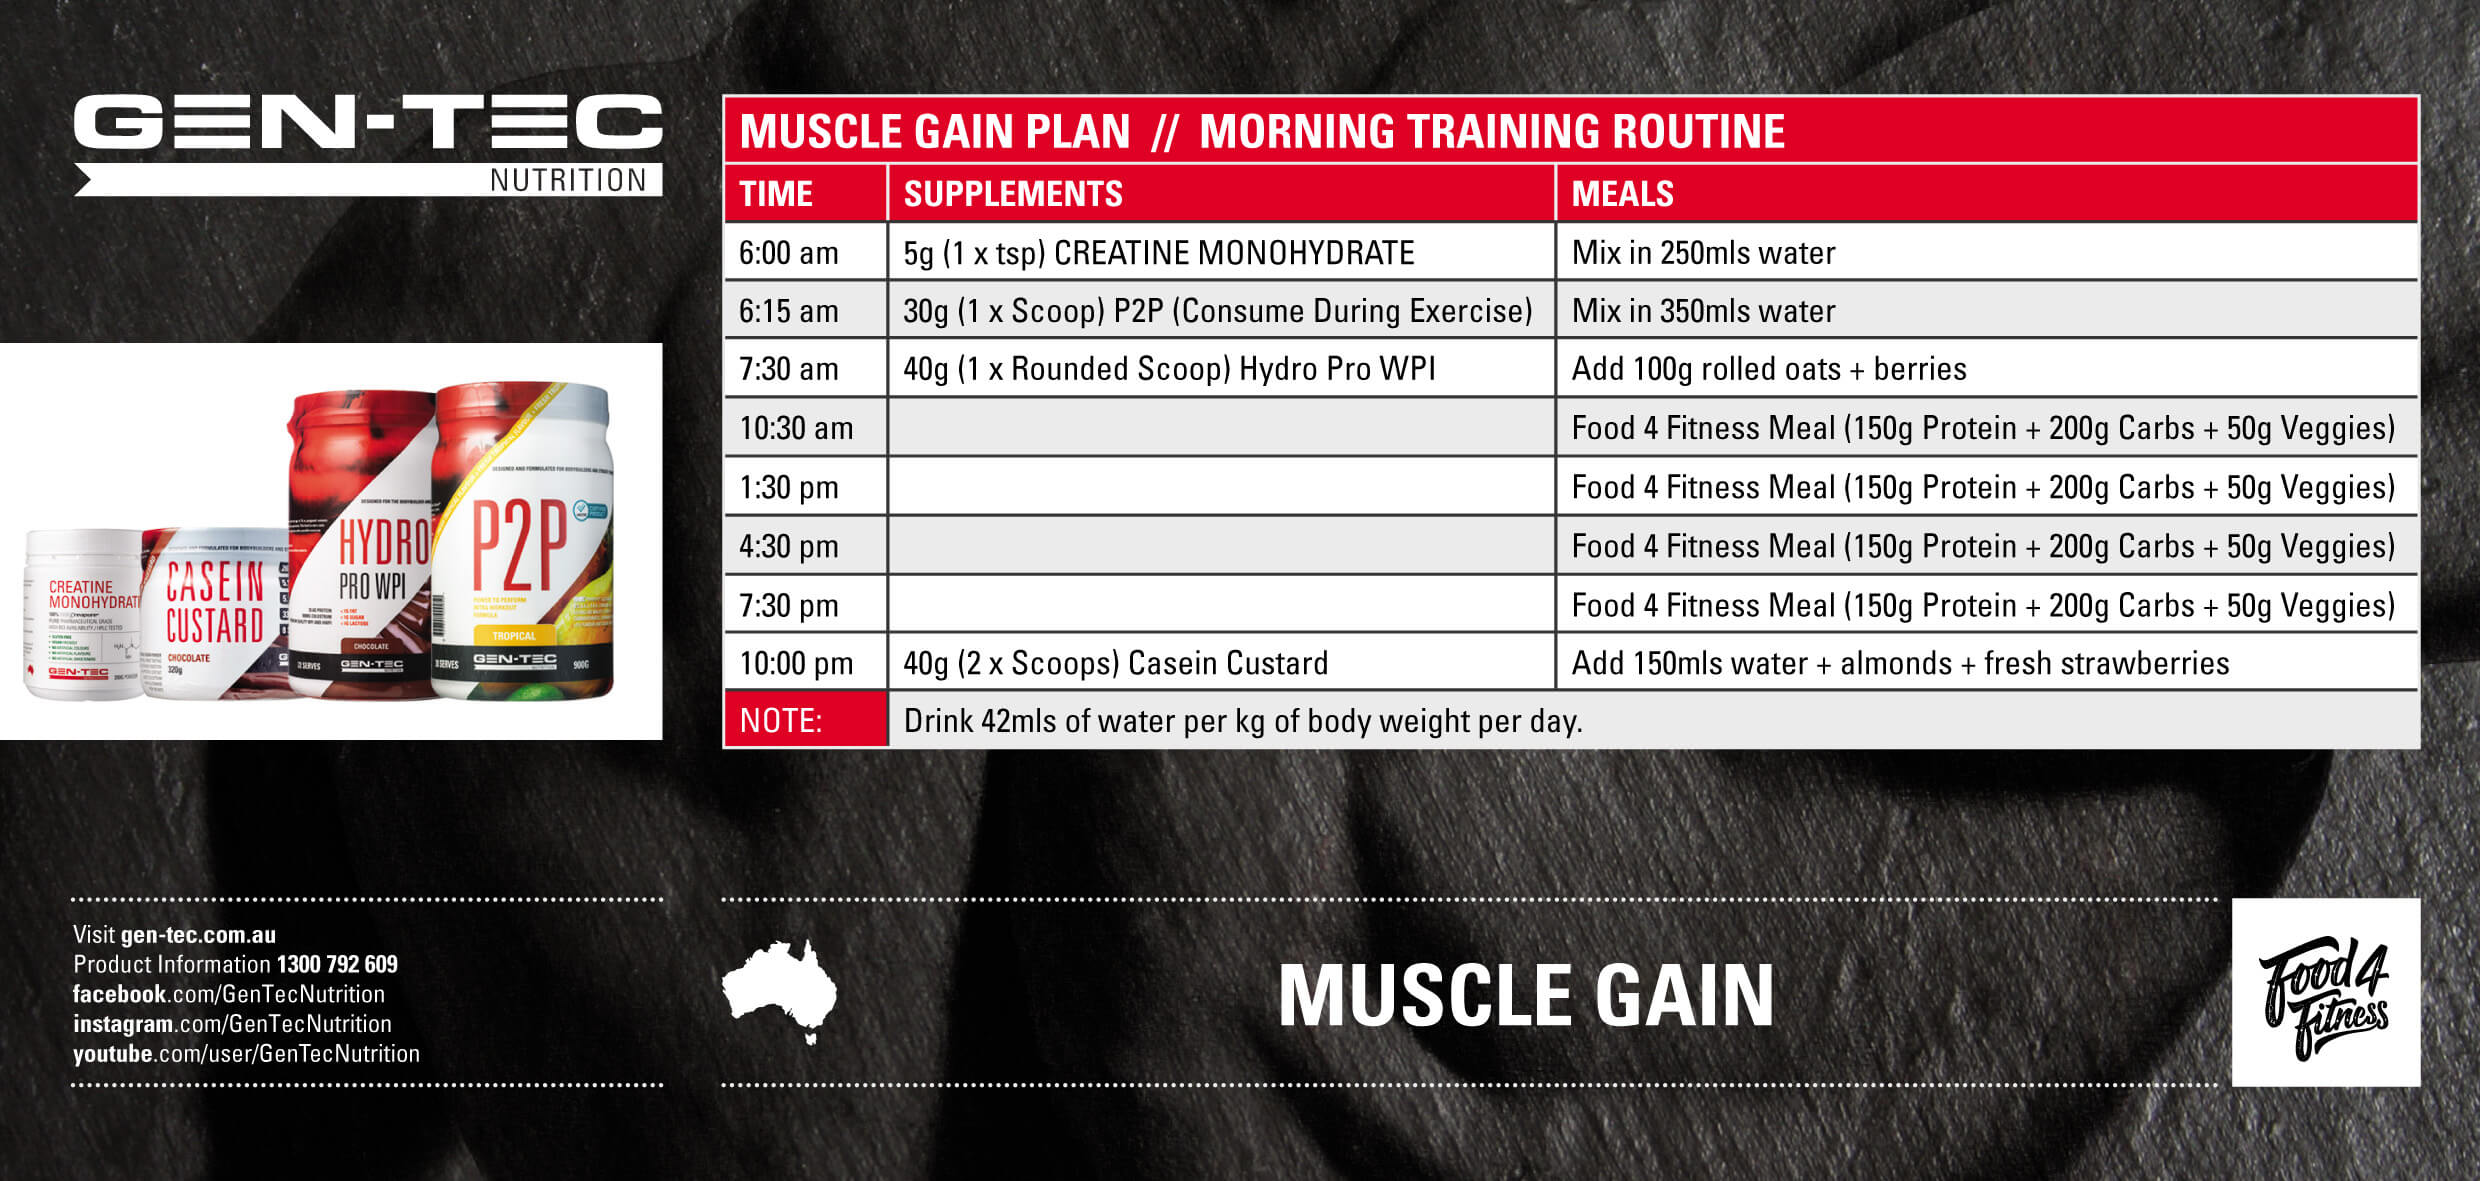 Muscle Gain Morning Training